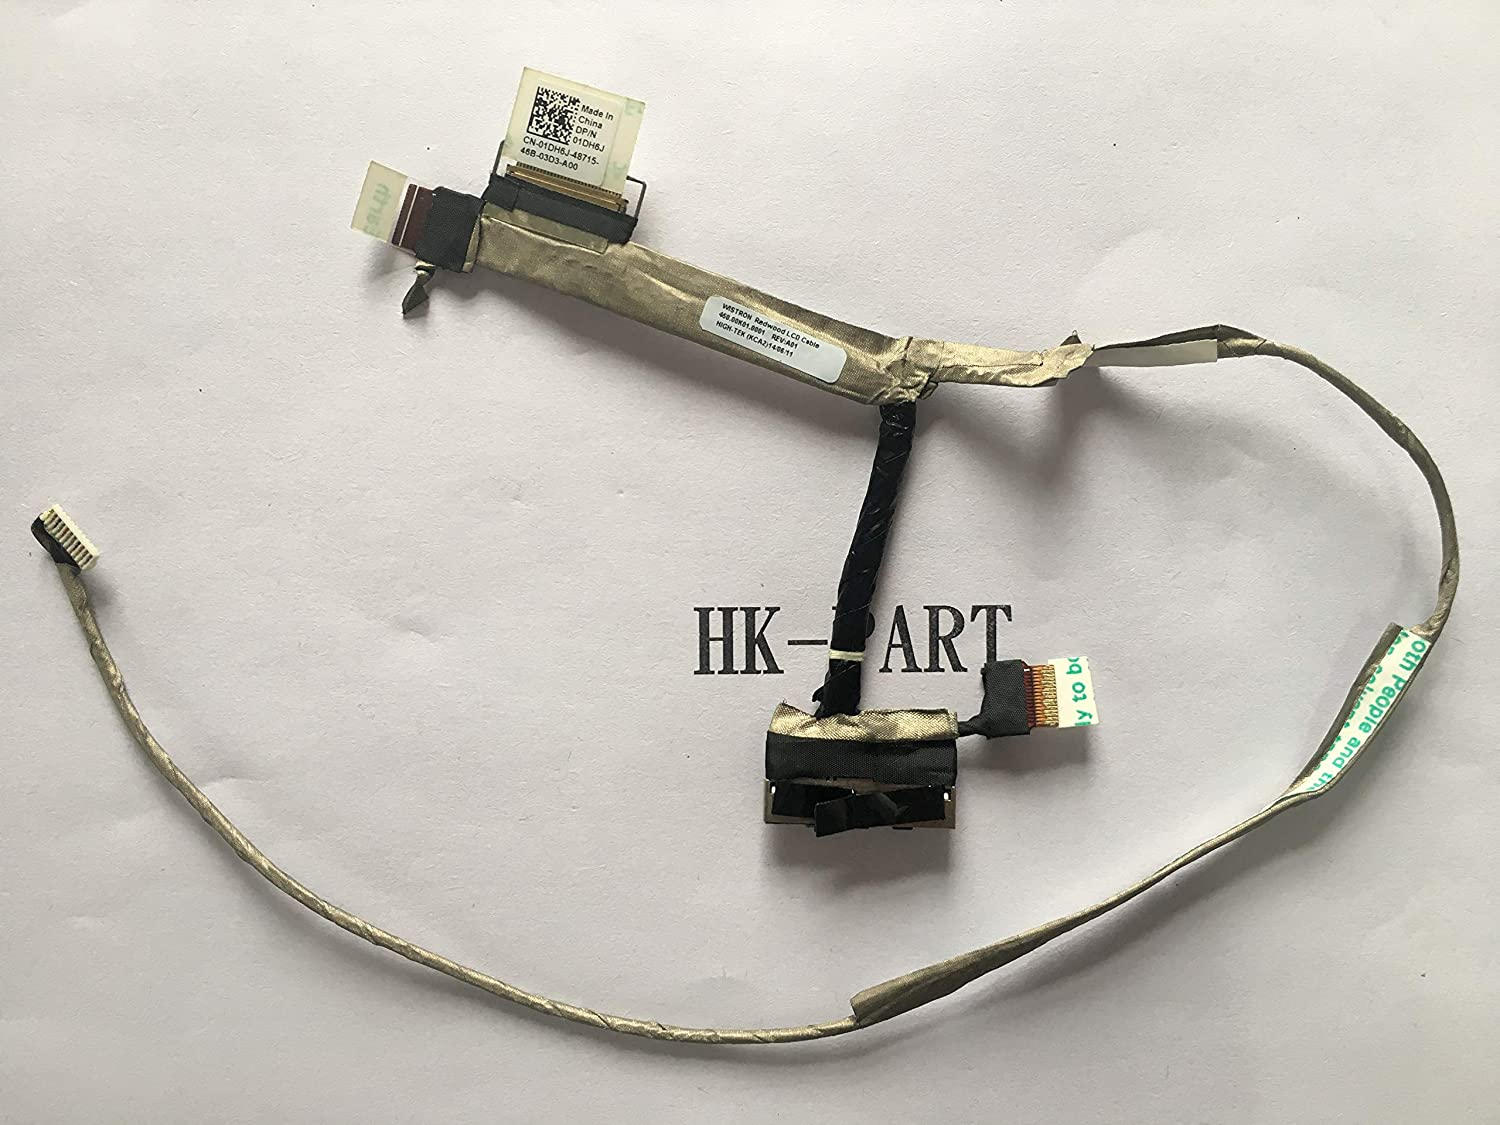 HK-PART Cable Replacement for Dell Inspiron 11-3147 11-3148 11-3152 LCD Cable Touchscreen 450.00K01.0001 DP//N 01DH6J